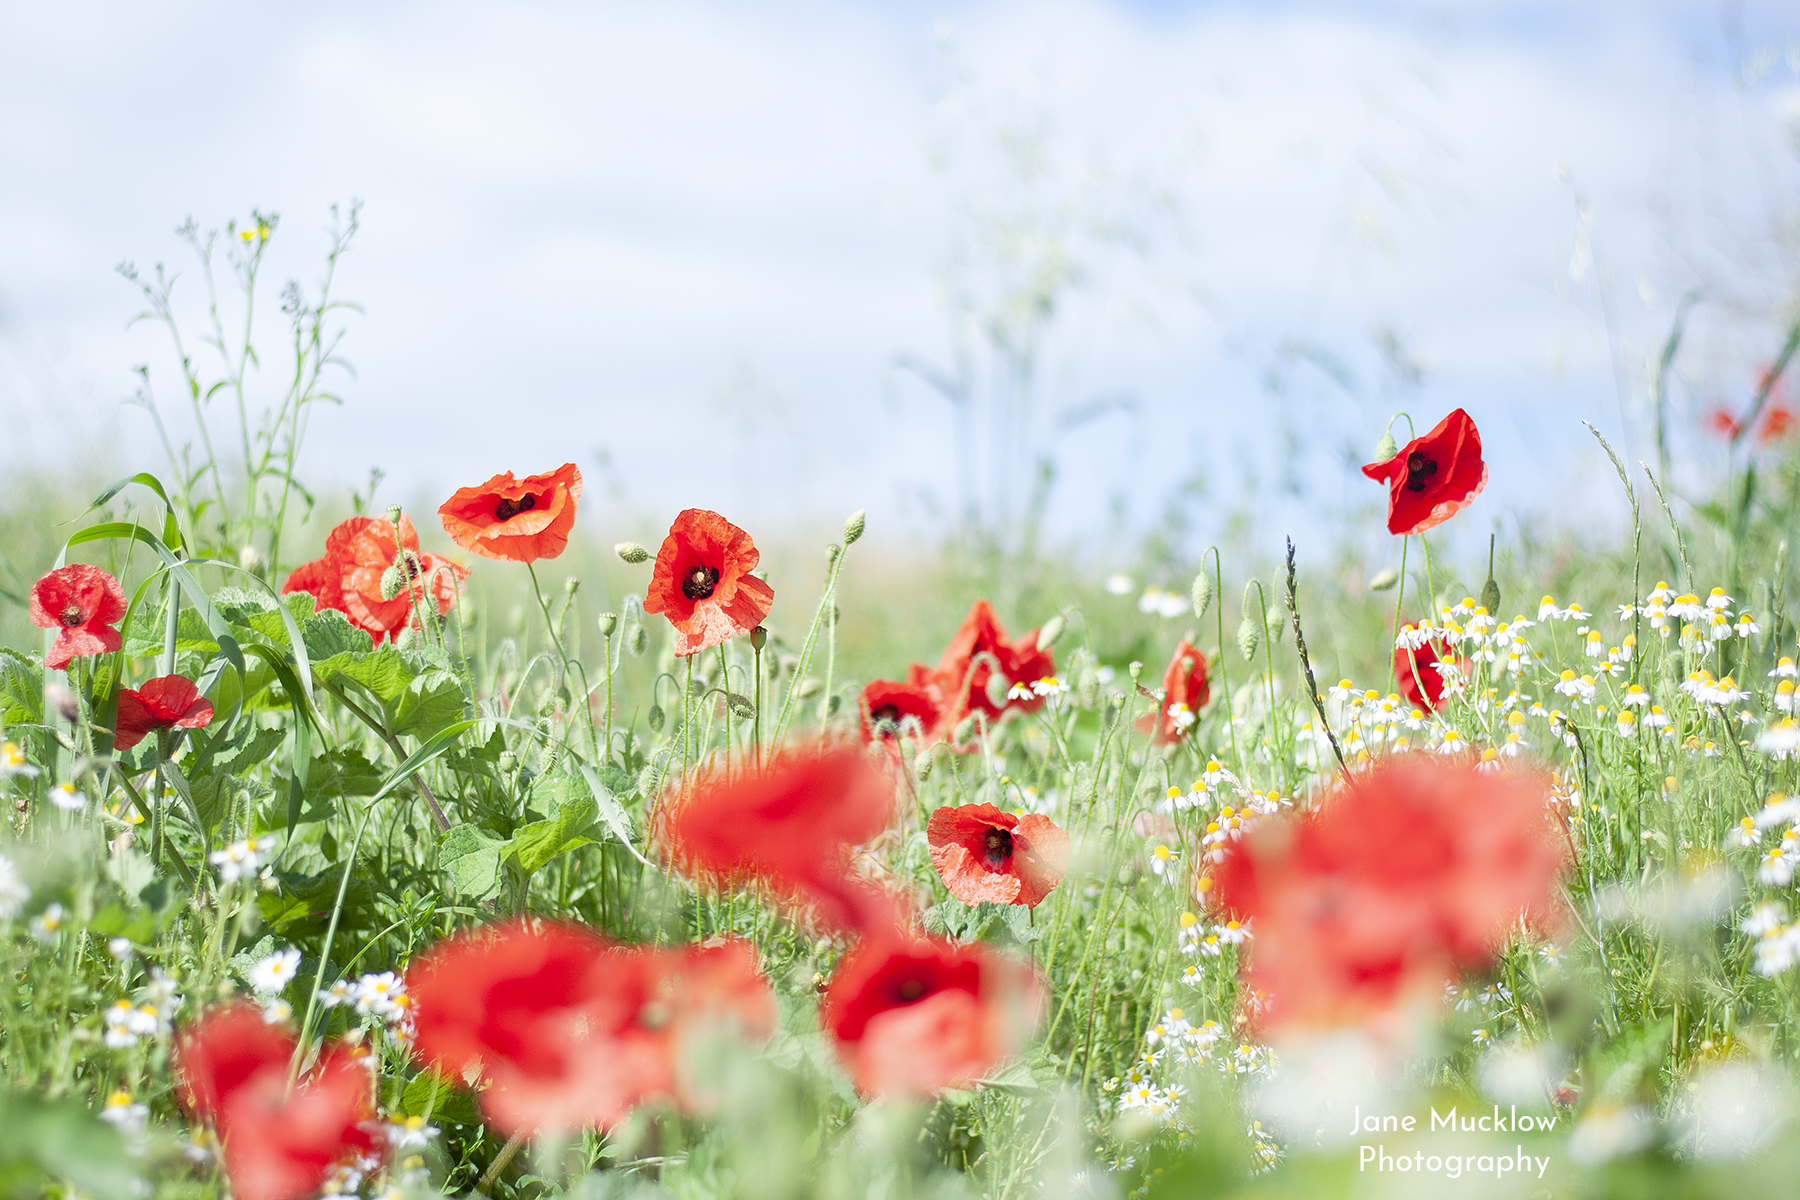 Photo of poppies and wild chamomile flowers, by Jane Mucklow